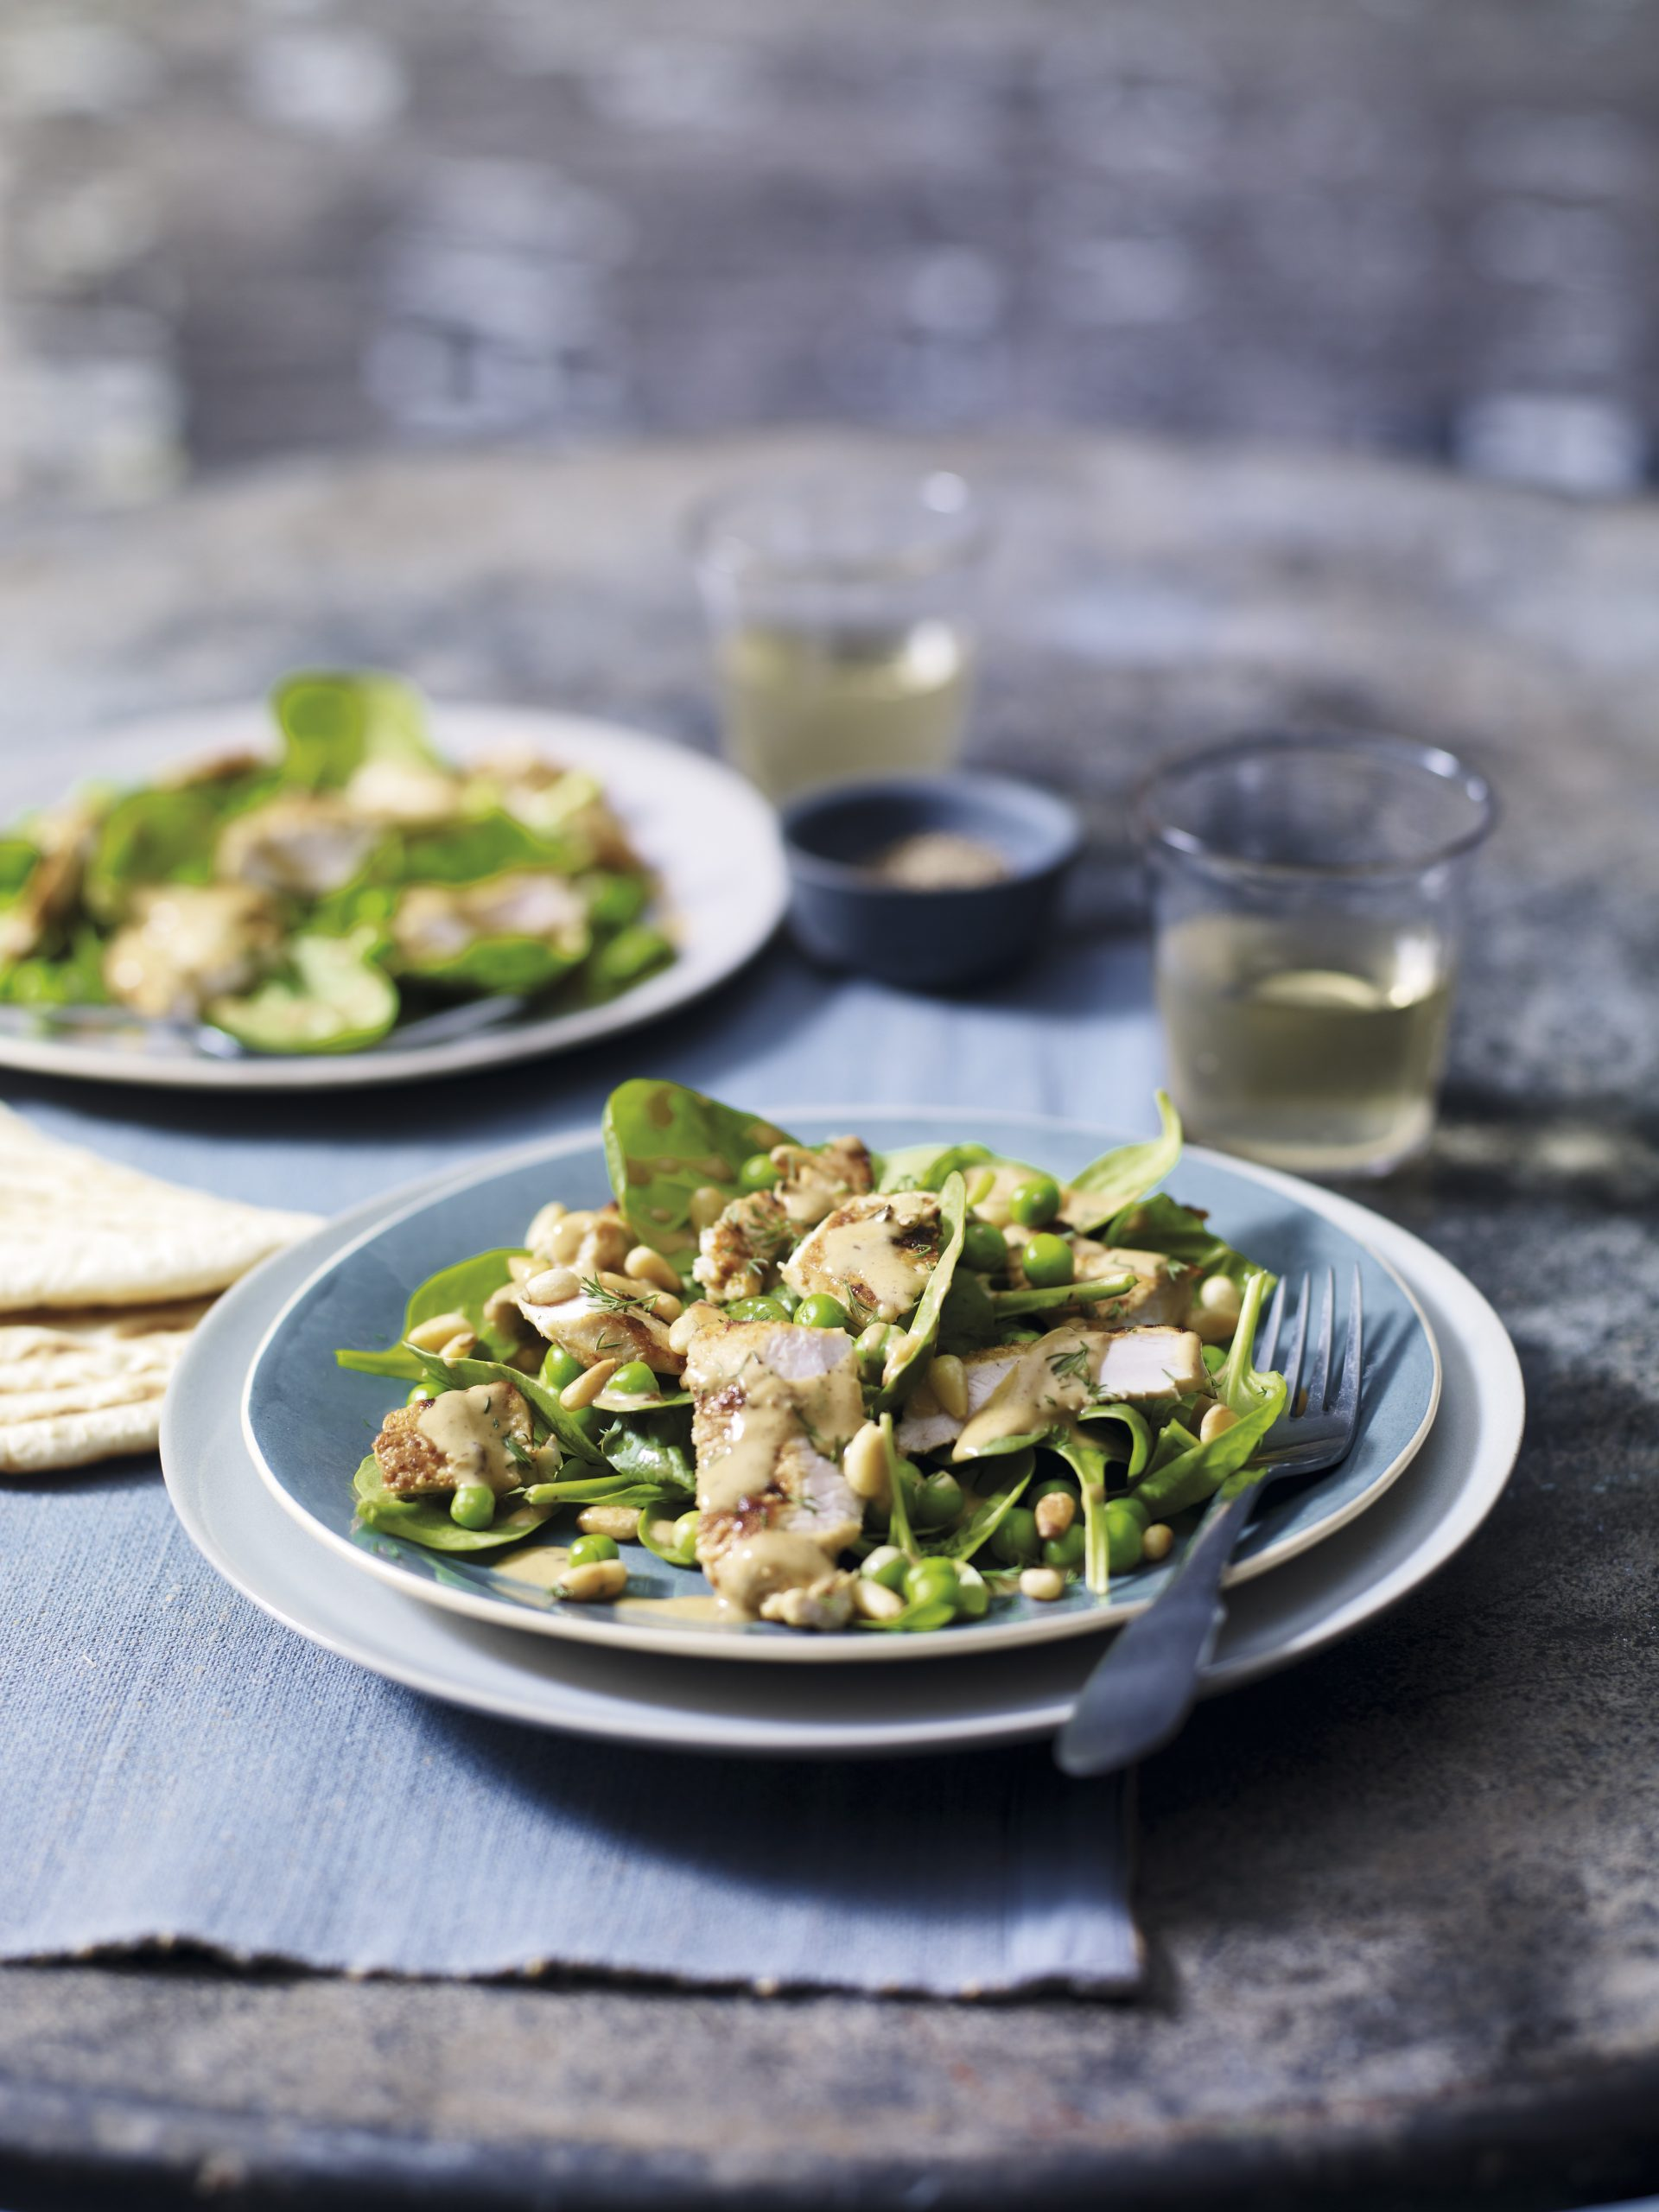 Recipe: Warm Turkey, Spinach & Pine Nut Salad